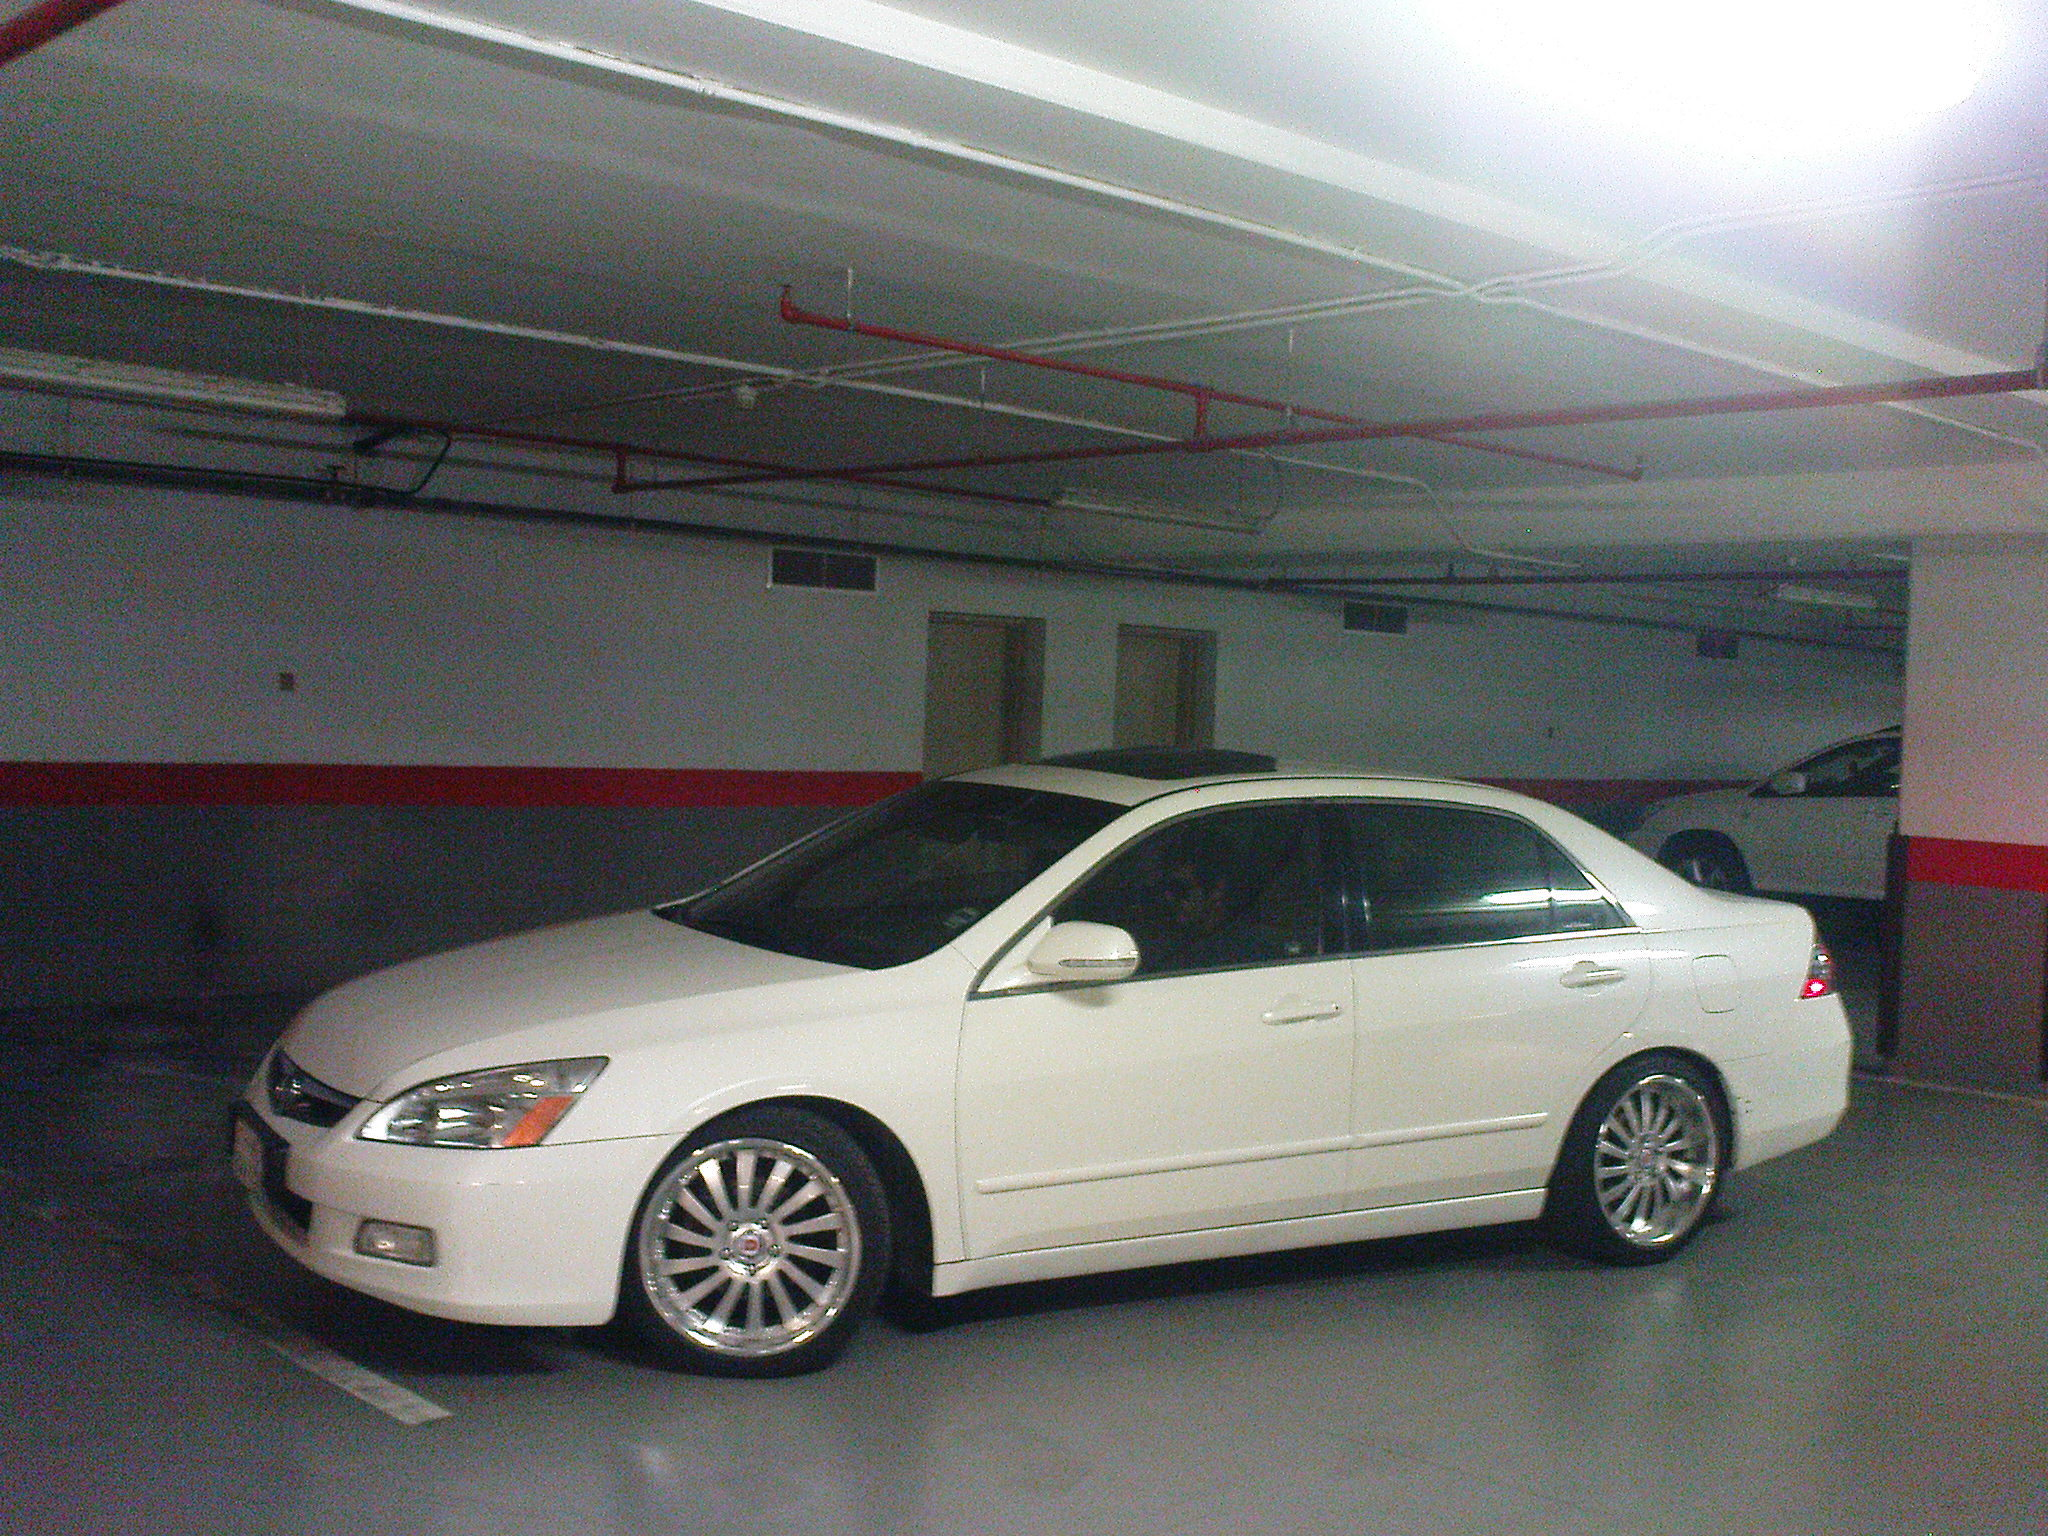 Honda Accord 0-60 >> ACCORDY9 2006 Honda Accord Specs, Photos, Modification Info at CarDomain